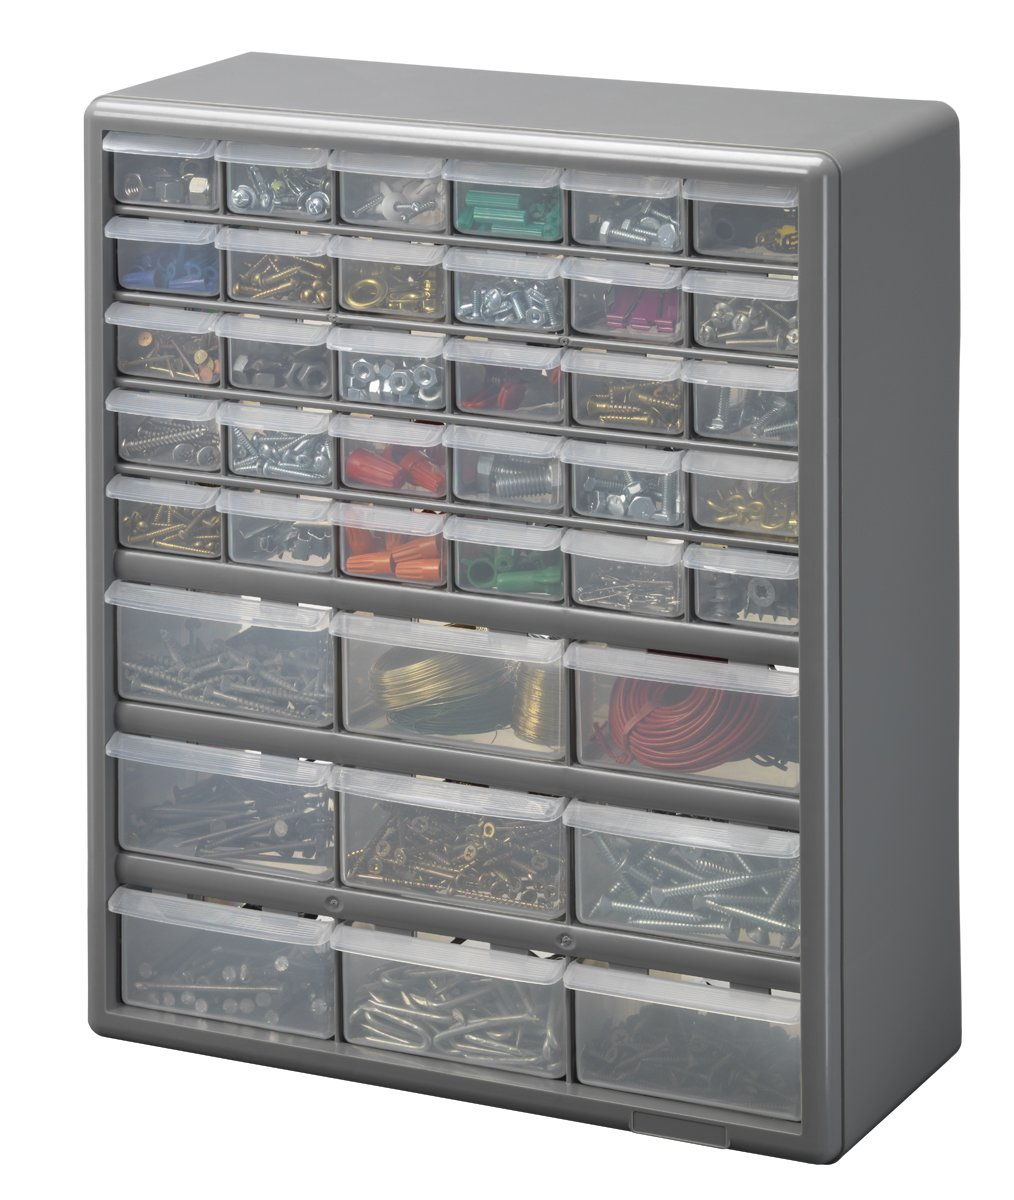 sc 1 st  Amazon.com & Amazon.com: Stack-On DS-39 39 Drawer Storage Cabinet: Home Improvement